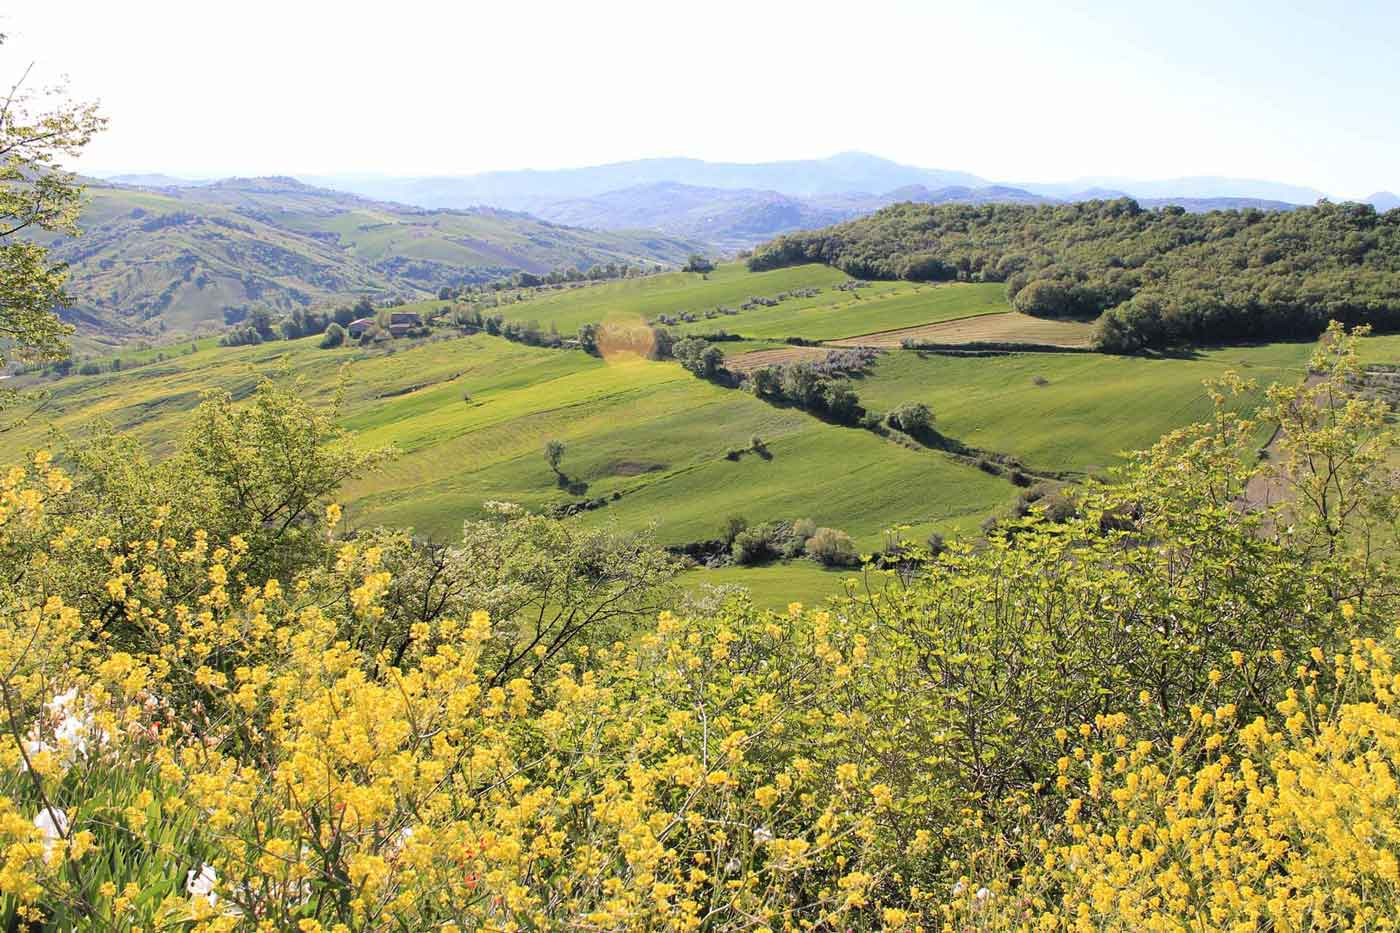 Caprafico valley in springtime